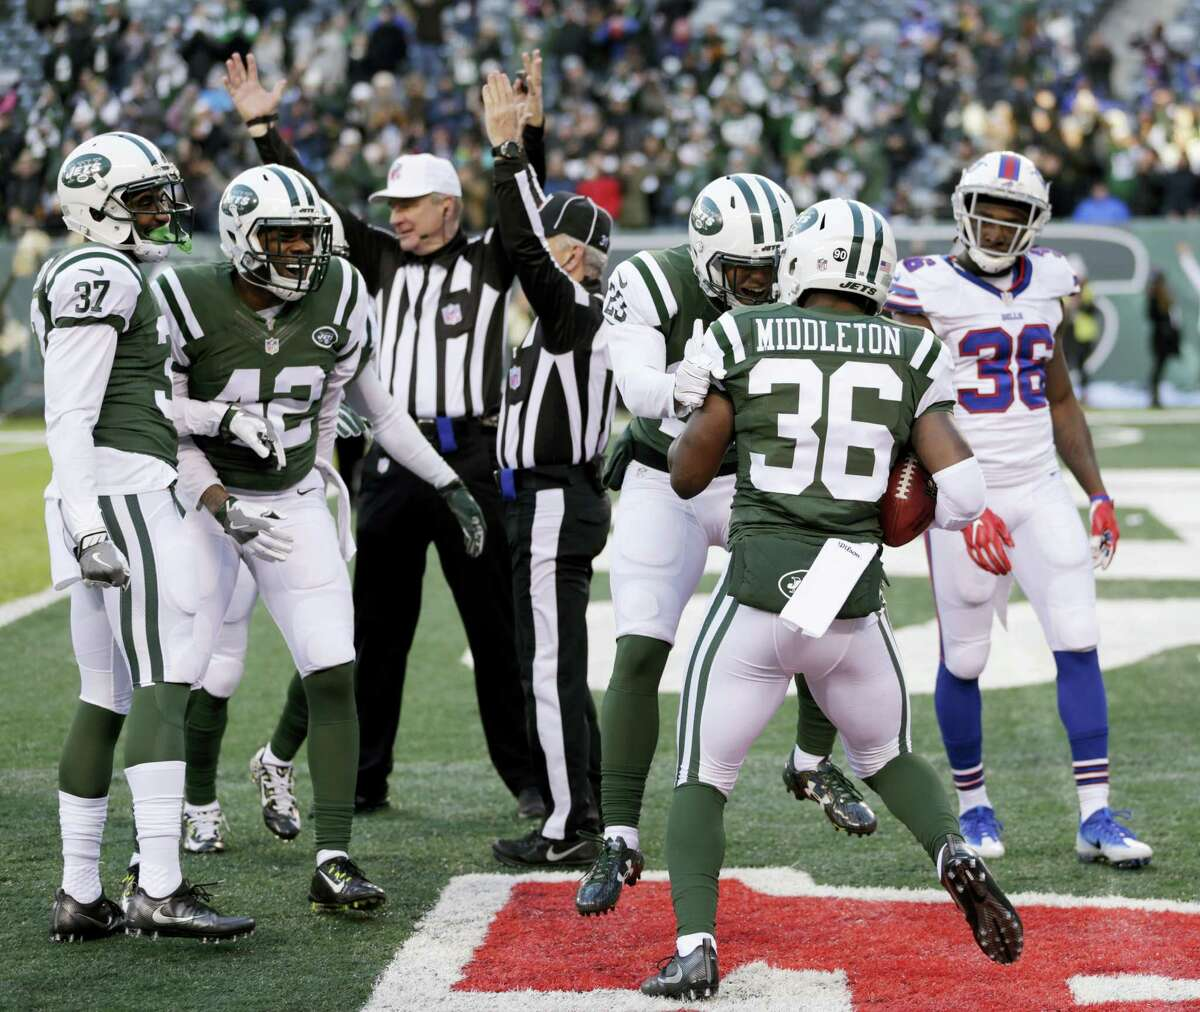 Jets defensive back Doug Middleton (36) is congratulated after scoring a touchdown by recovering a kickoff in the Bills end zone on Sunday.